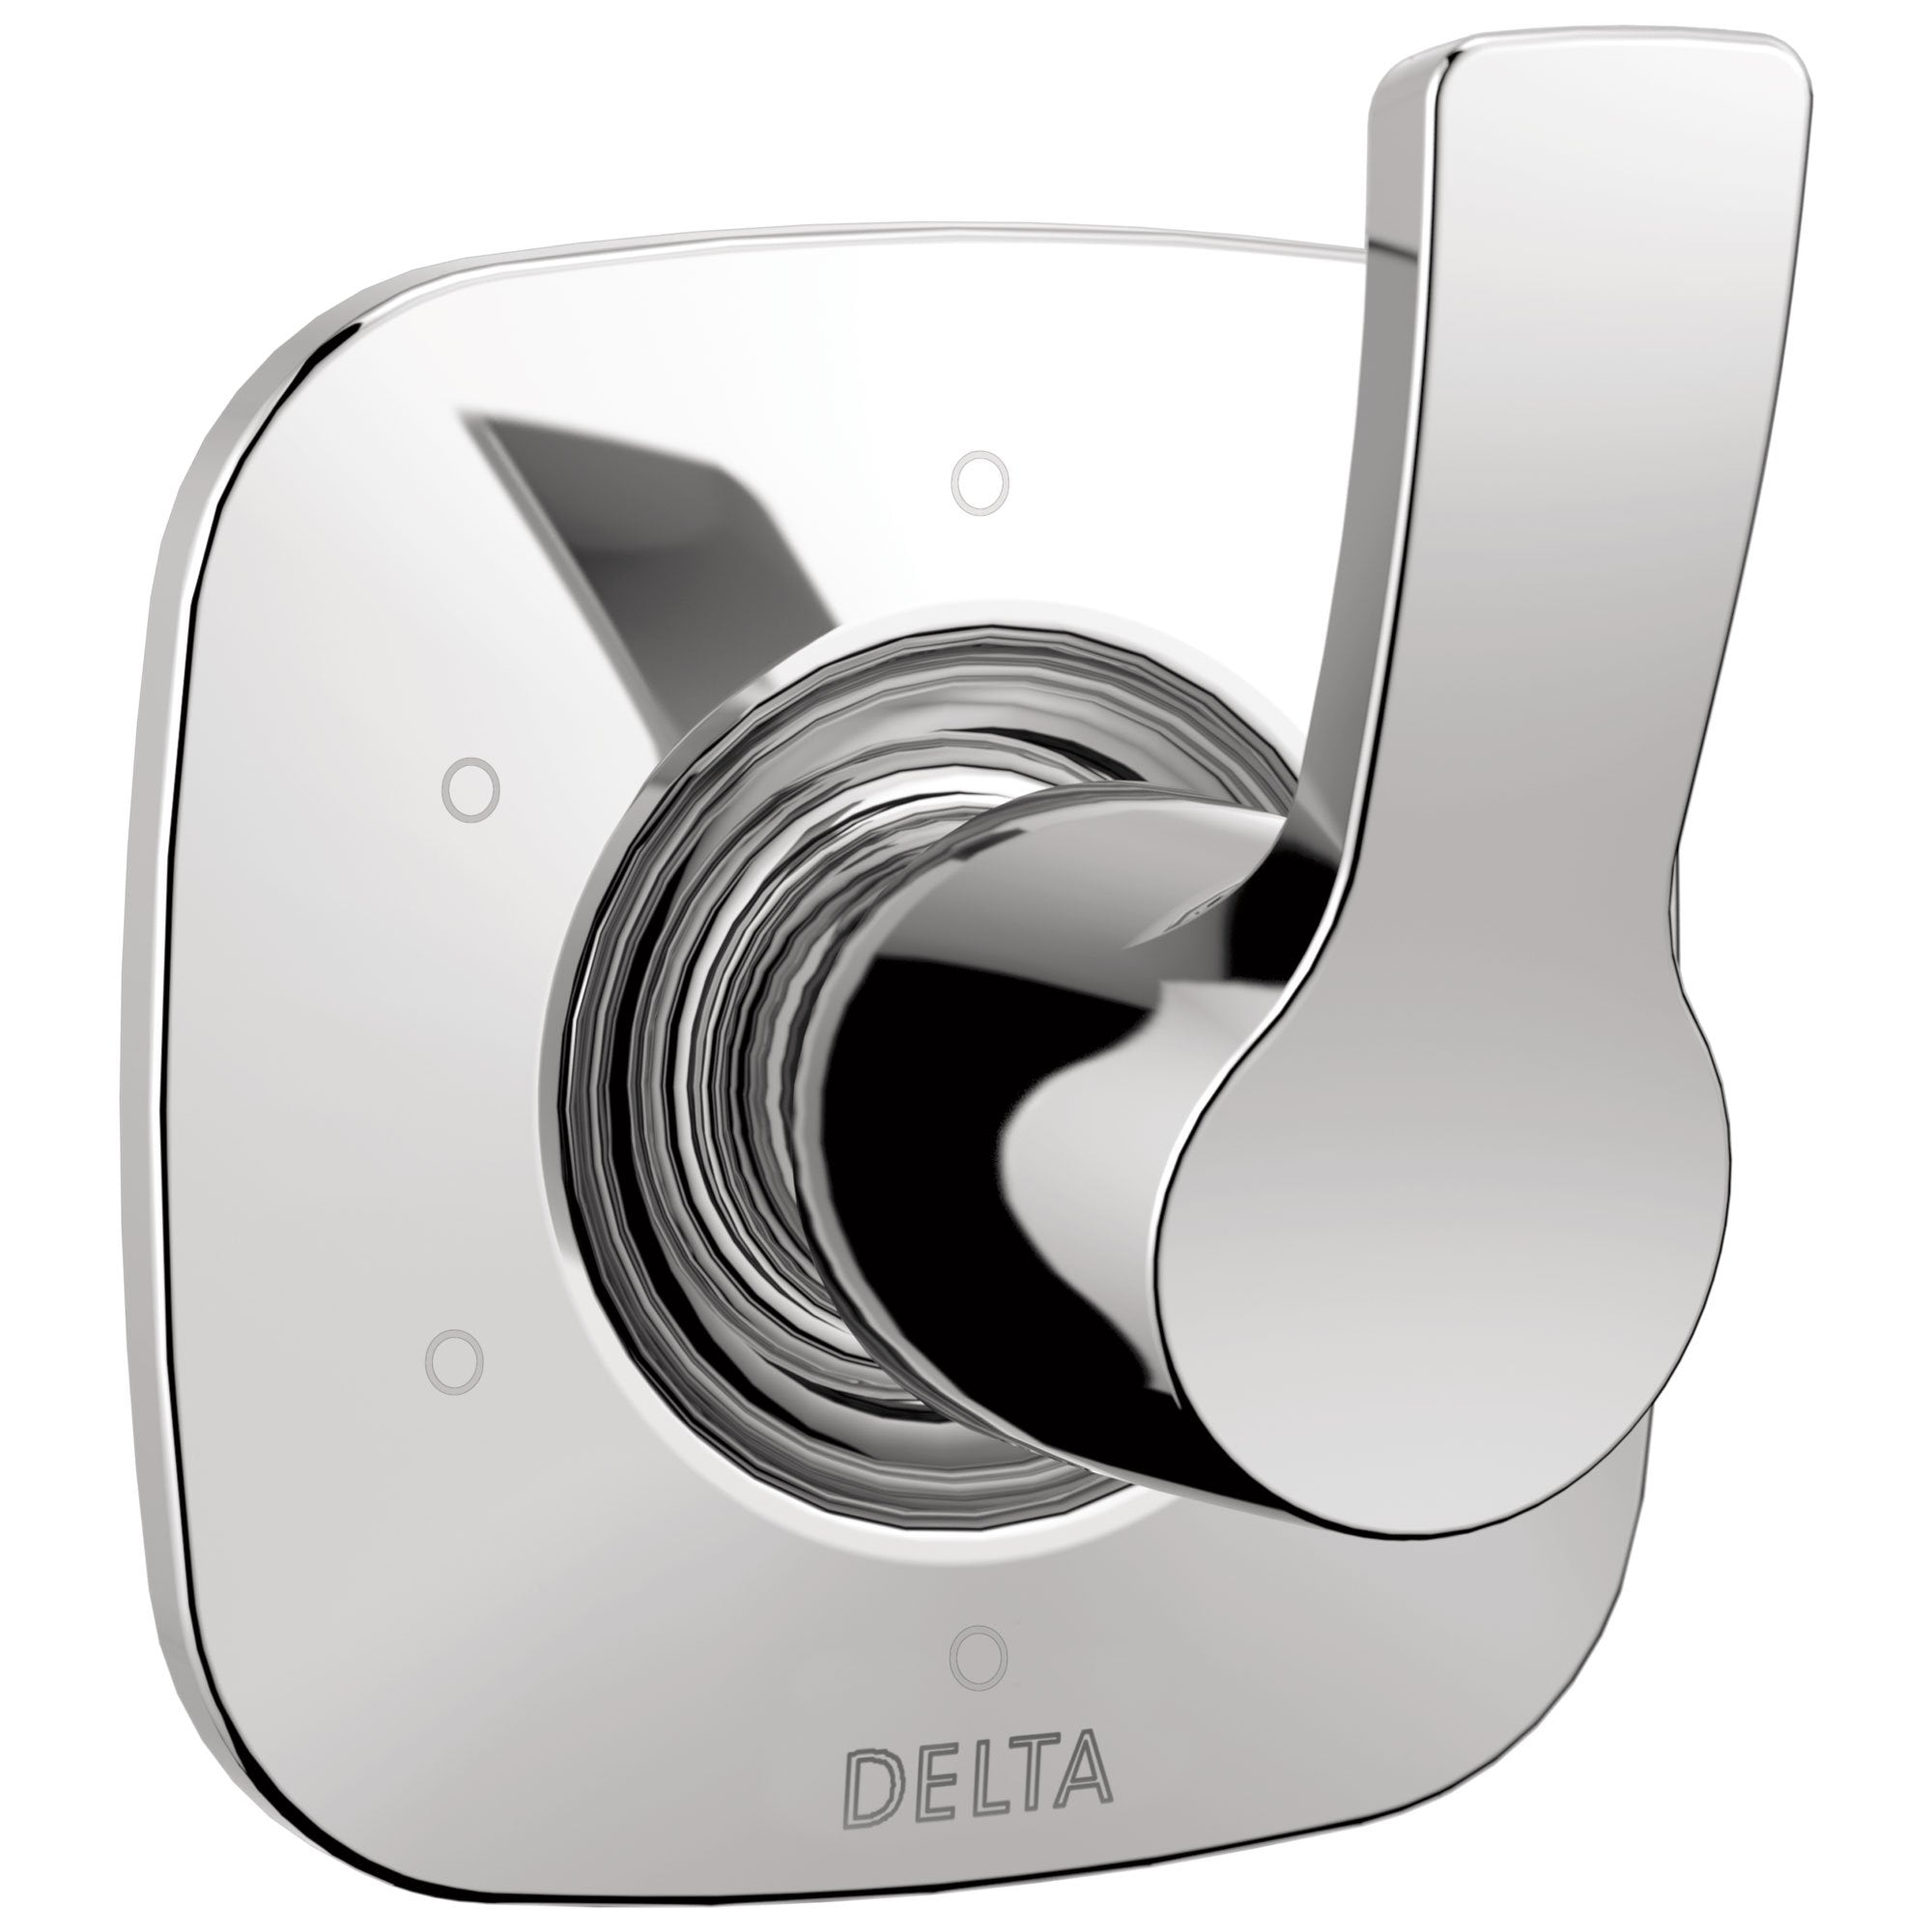 Delta Tesla Collection Chrome Finish 6-Setting 3-Port Modern Single Handle Shower Diverter Includes Rough-in Valve D2055V